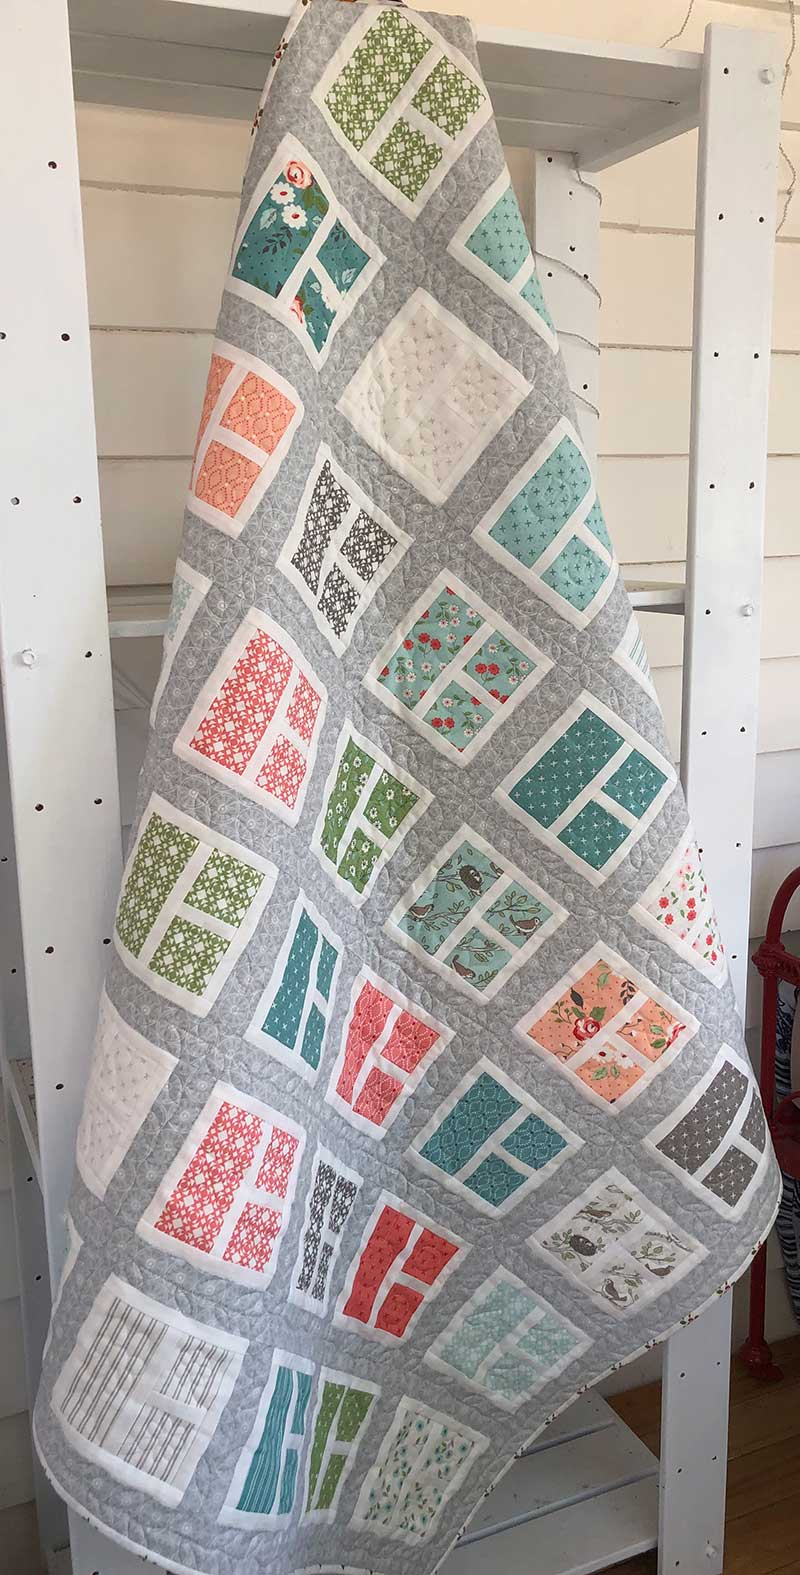 Charm Collective – 3 Pane's a Charm Quilt